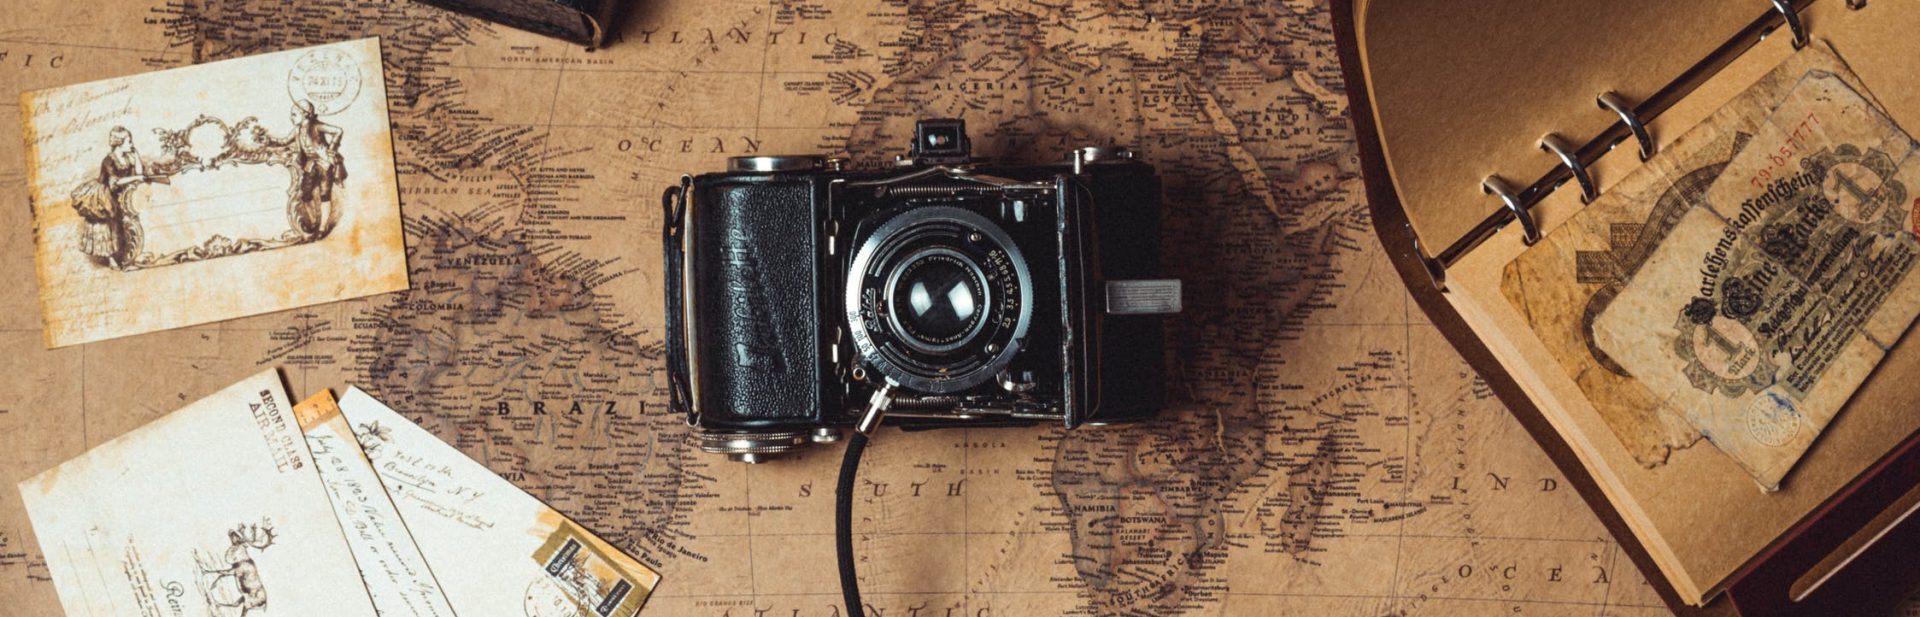 Camera, map and notes for your itinerary